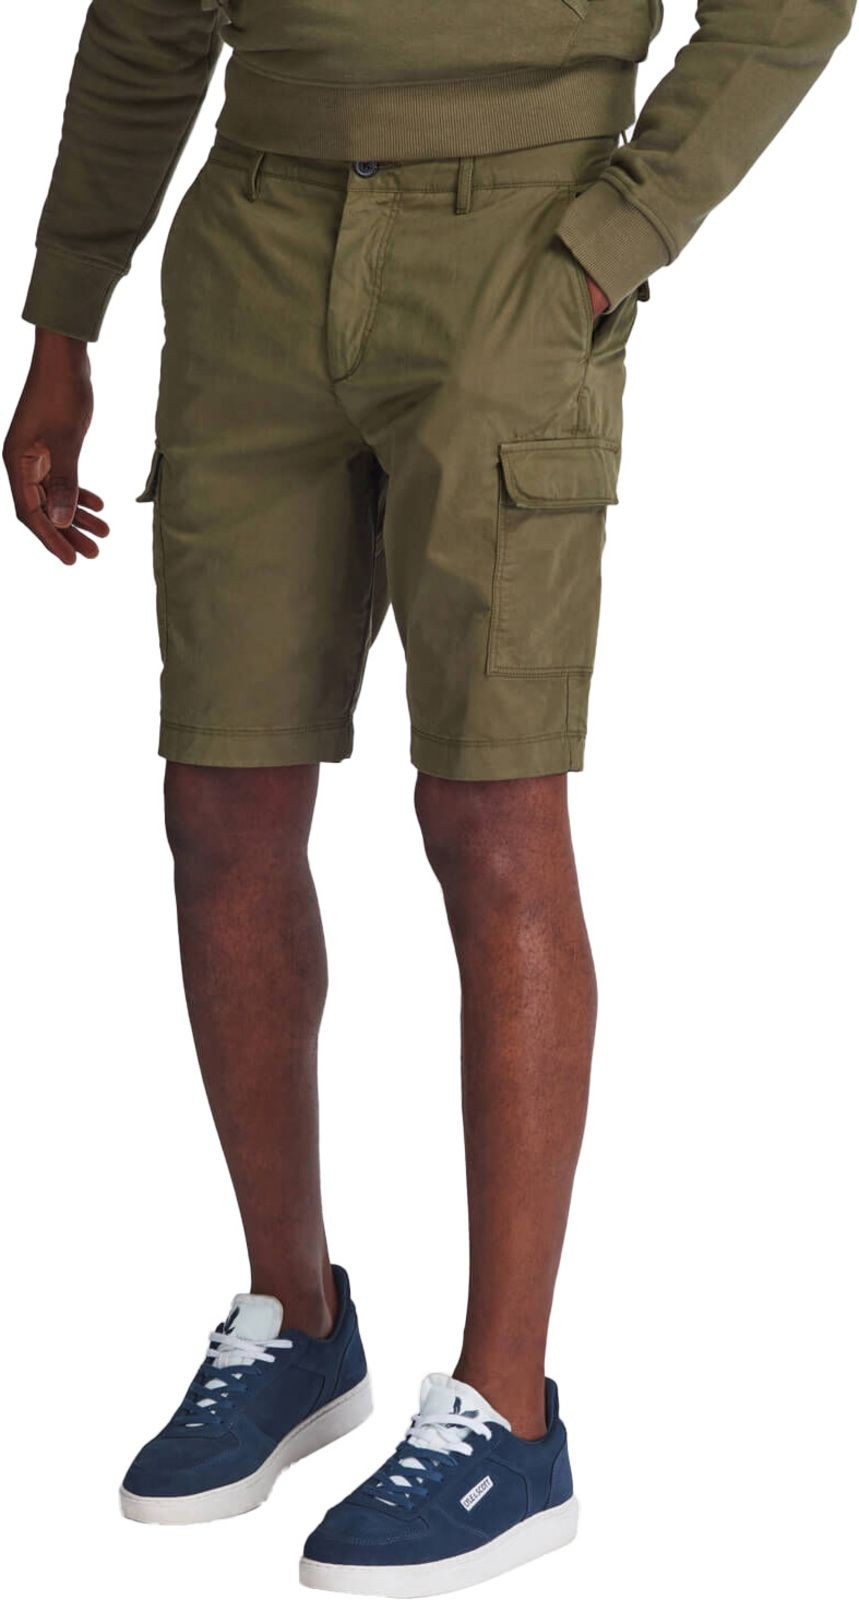 Lyle & Scott Cargo Shorts Khaki